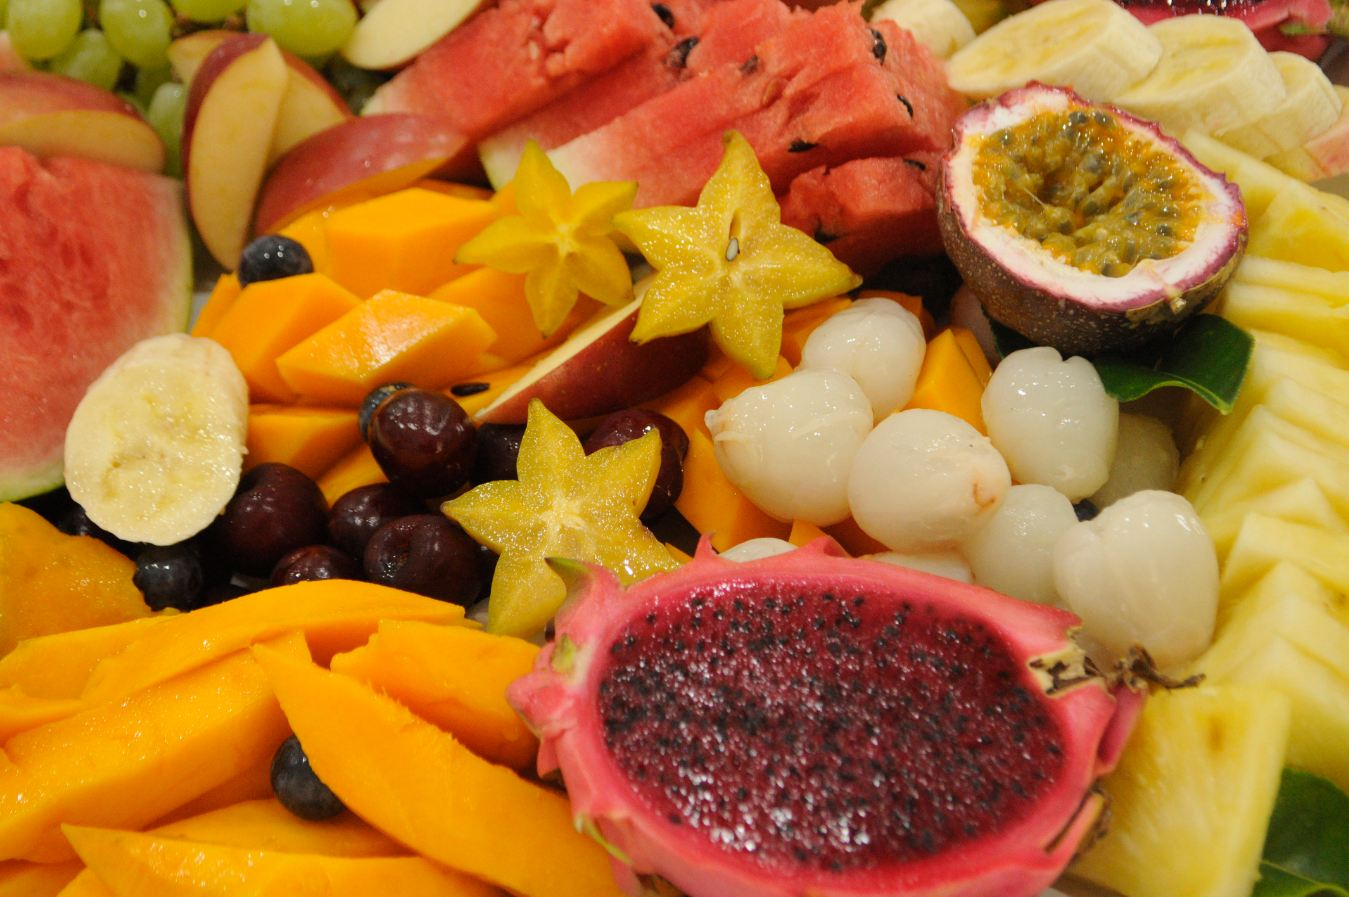 aussiehunter-chilled-tropical-fruit-platter